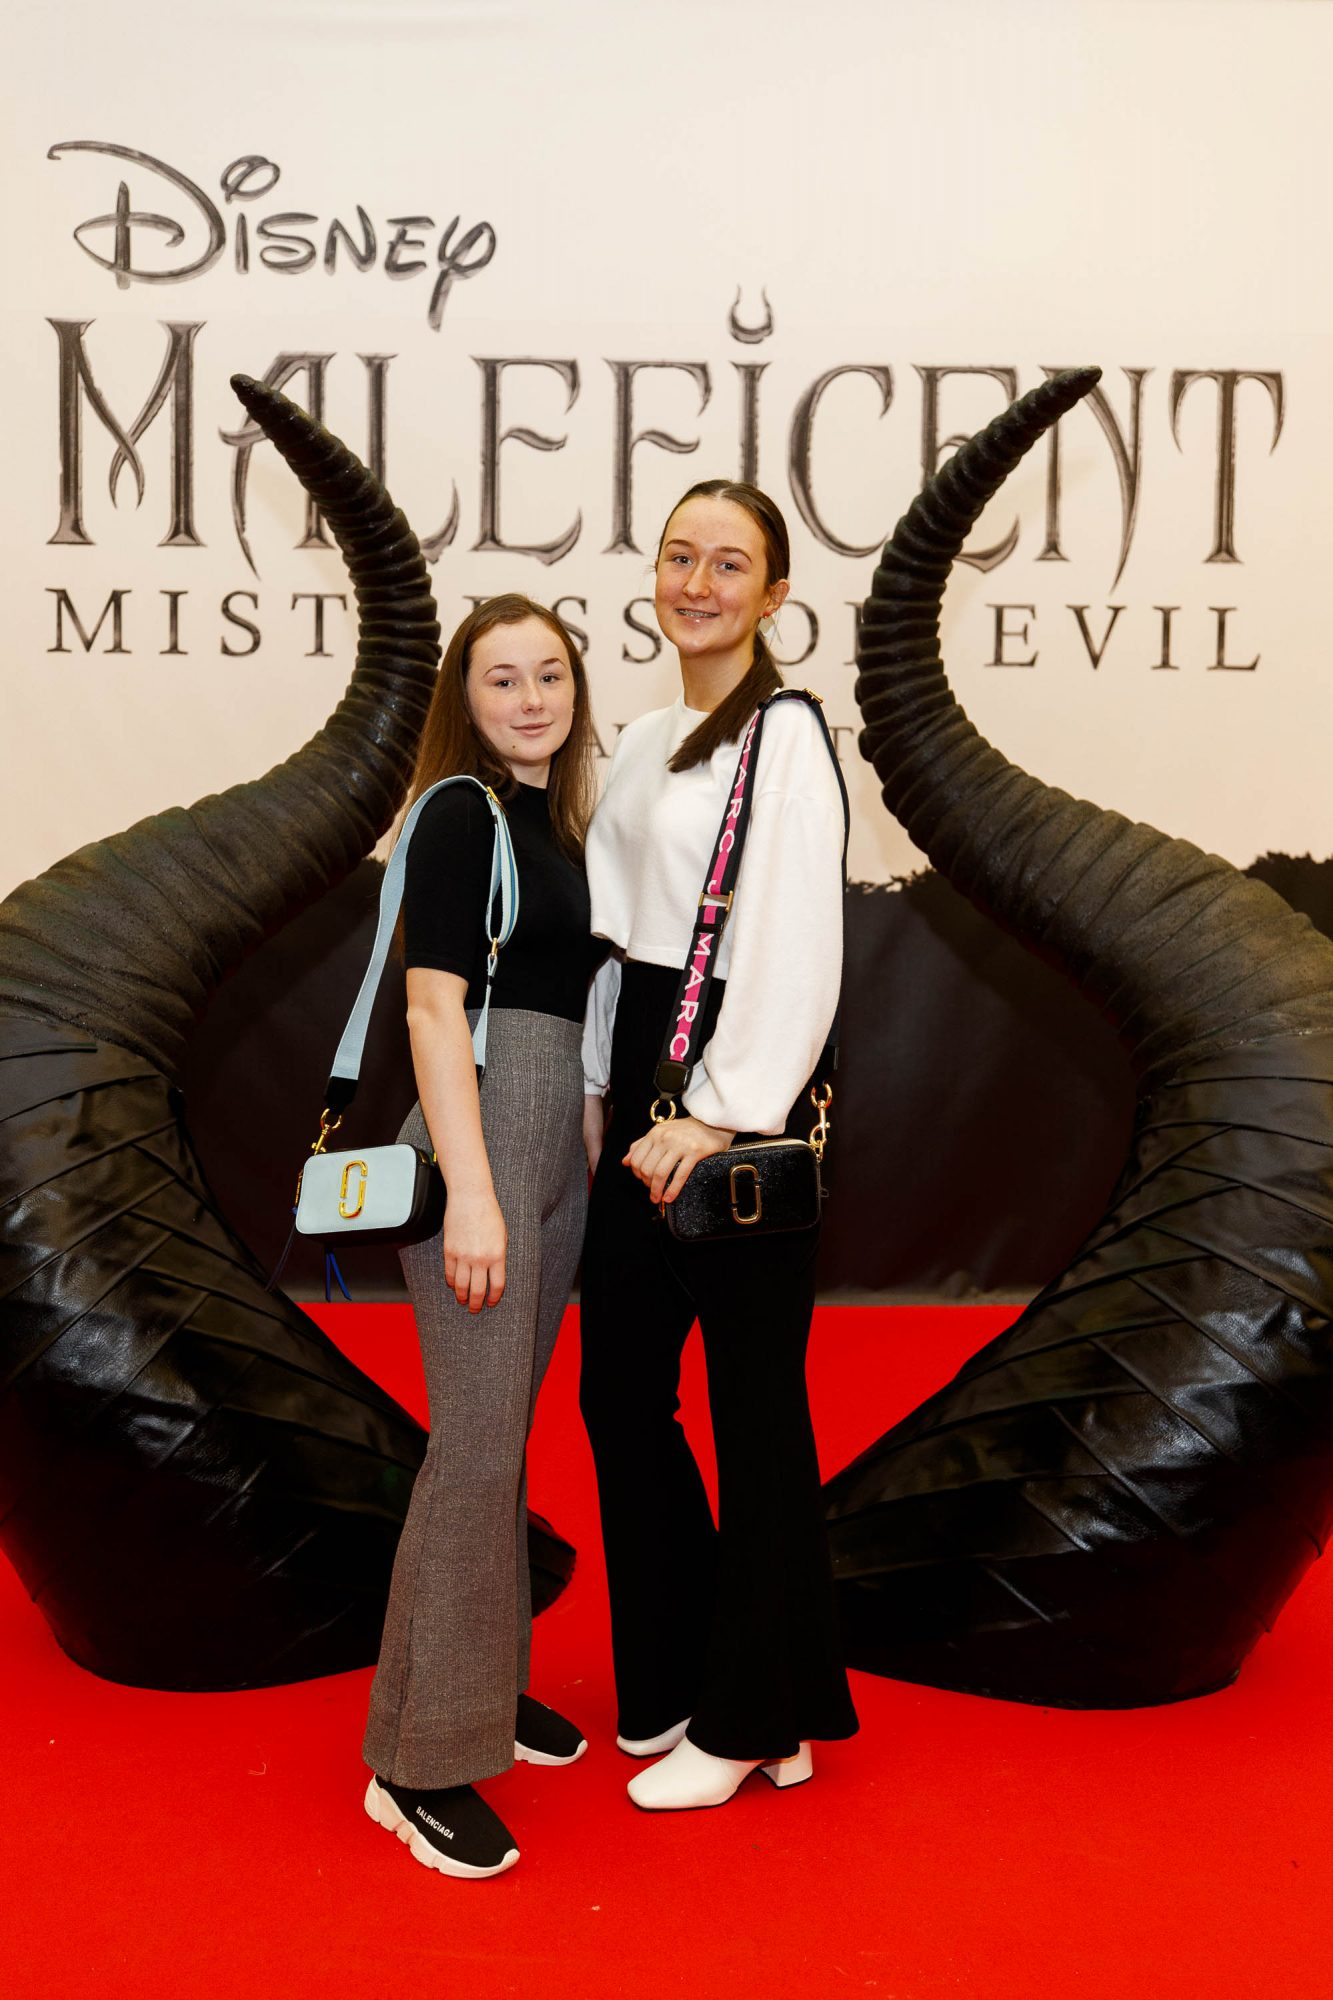 Kimn Fitzgerald and Mia Fitzgerald (16) from Clondalkin pictured at the special family preview screening of Disney's MALEFICENT: MISTRESS OF EVIL, in the Odeon Point Village. Picture Andres Poveda